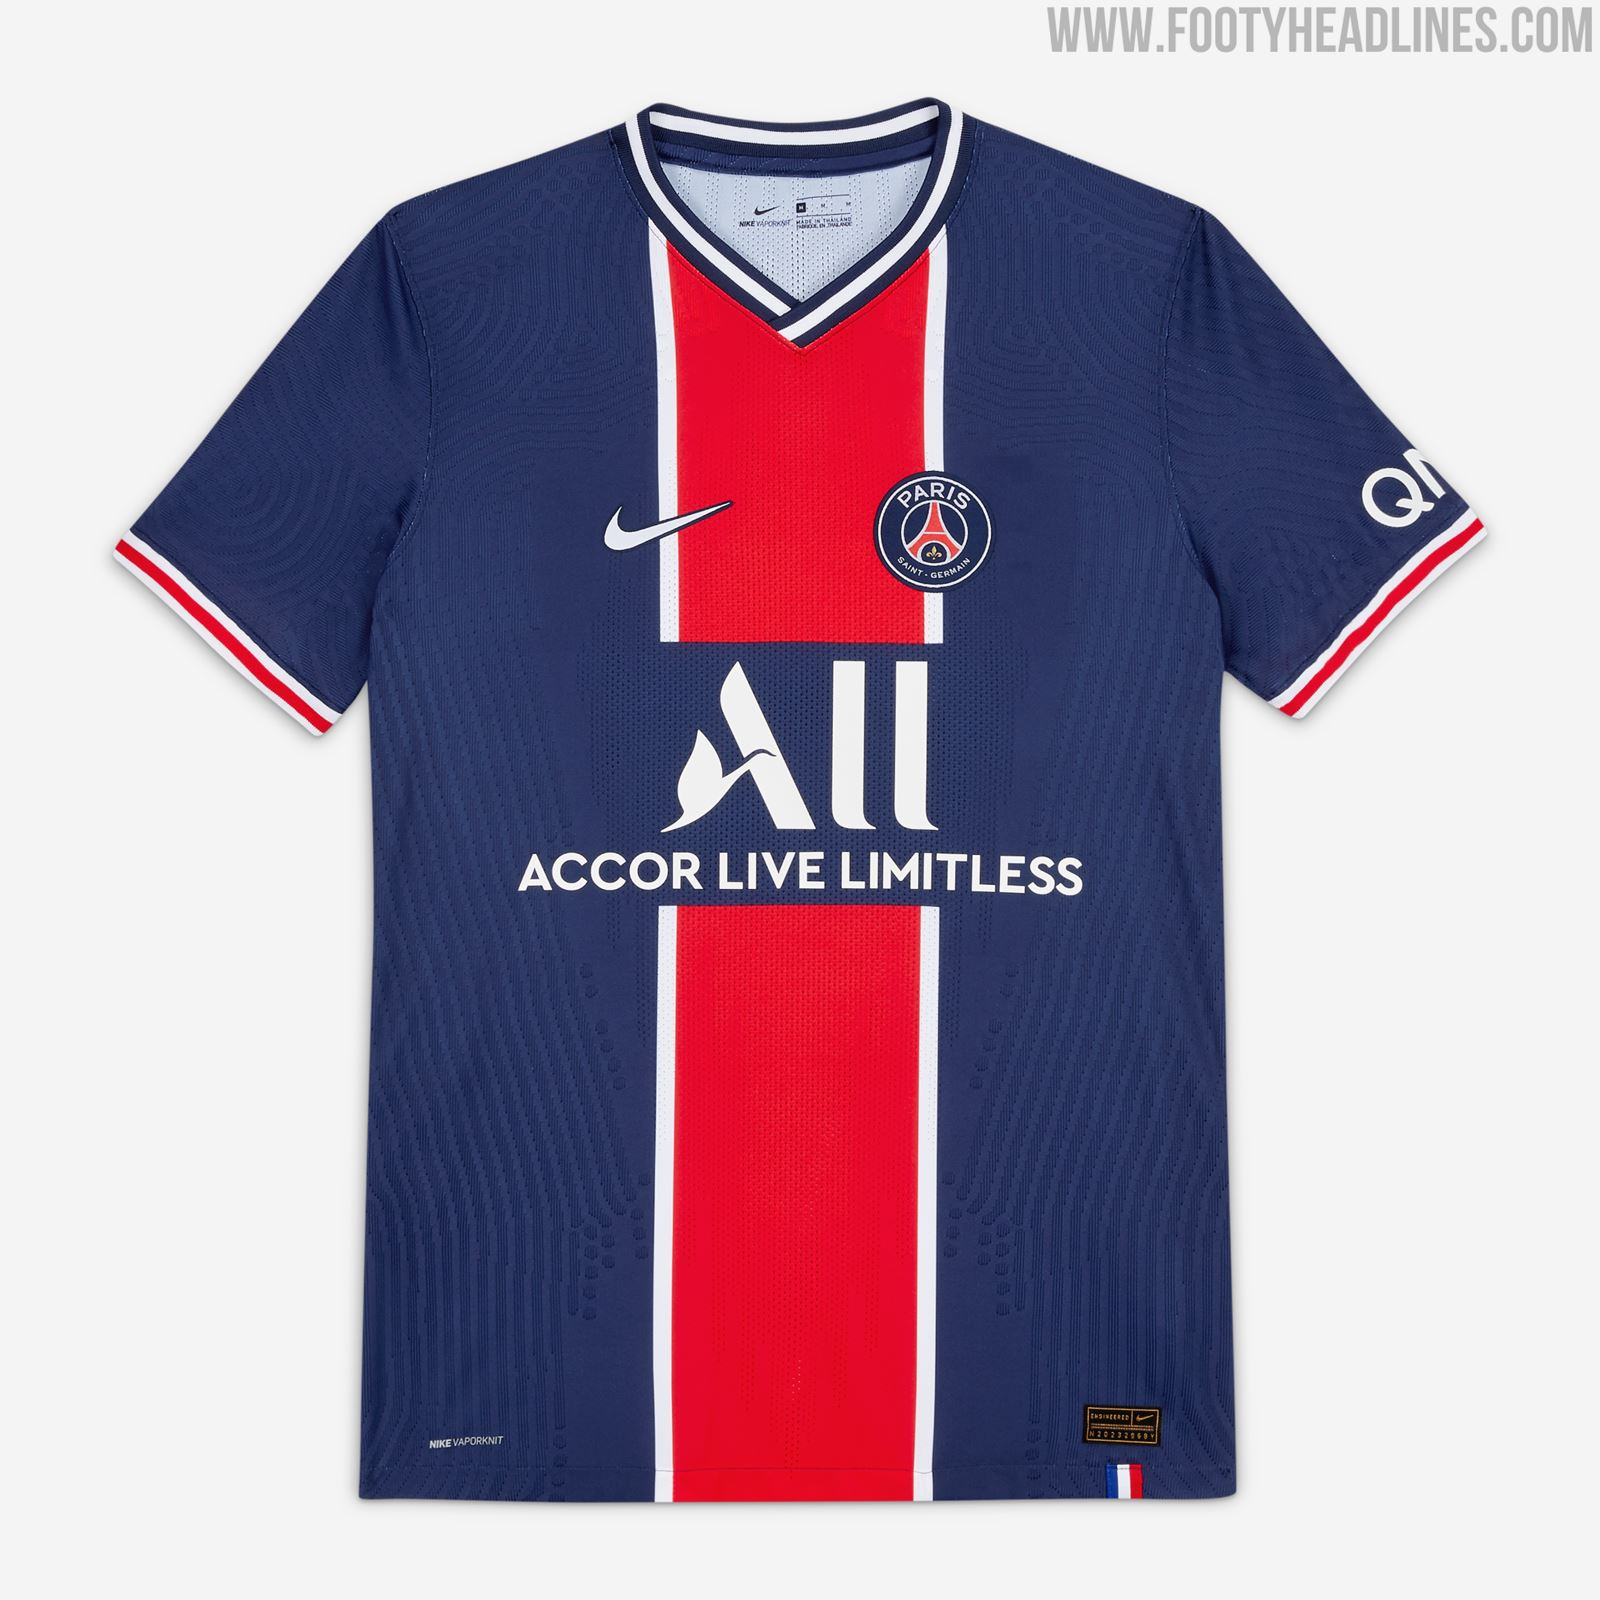 20 21 Home Kit Design 2 Psg Face Masks Released Limited To 1 000 Pairs Footy Headlines